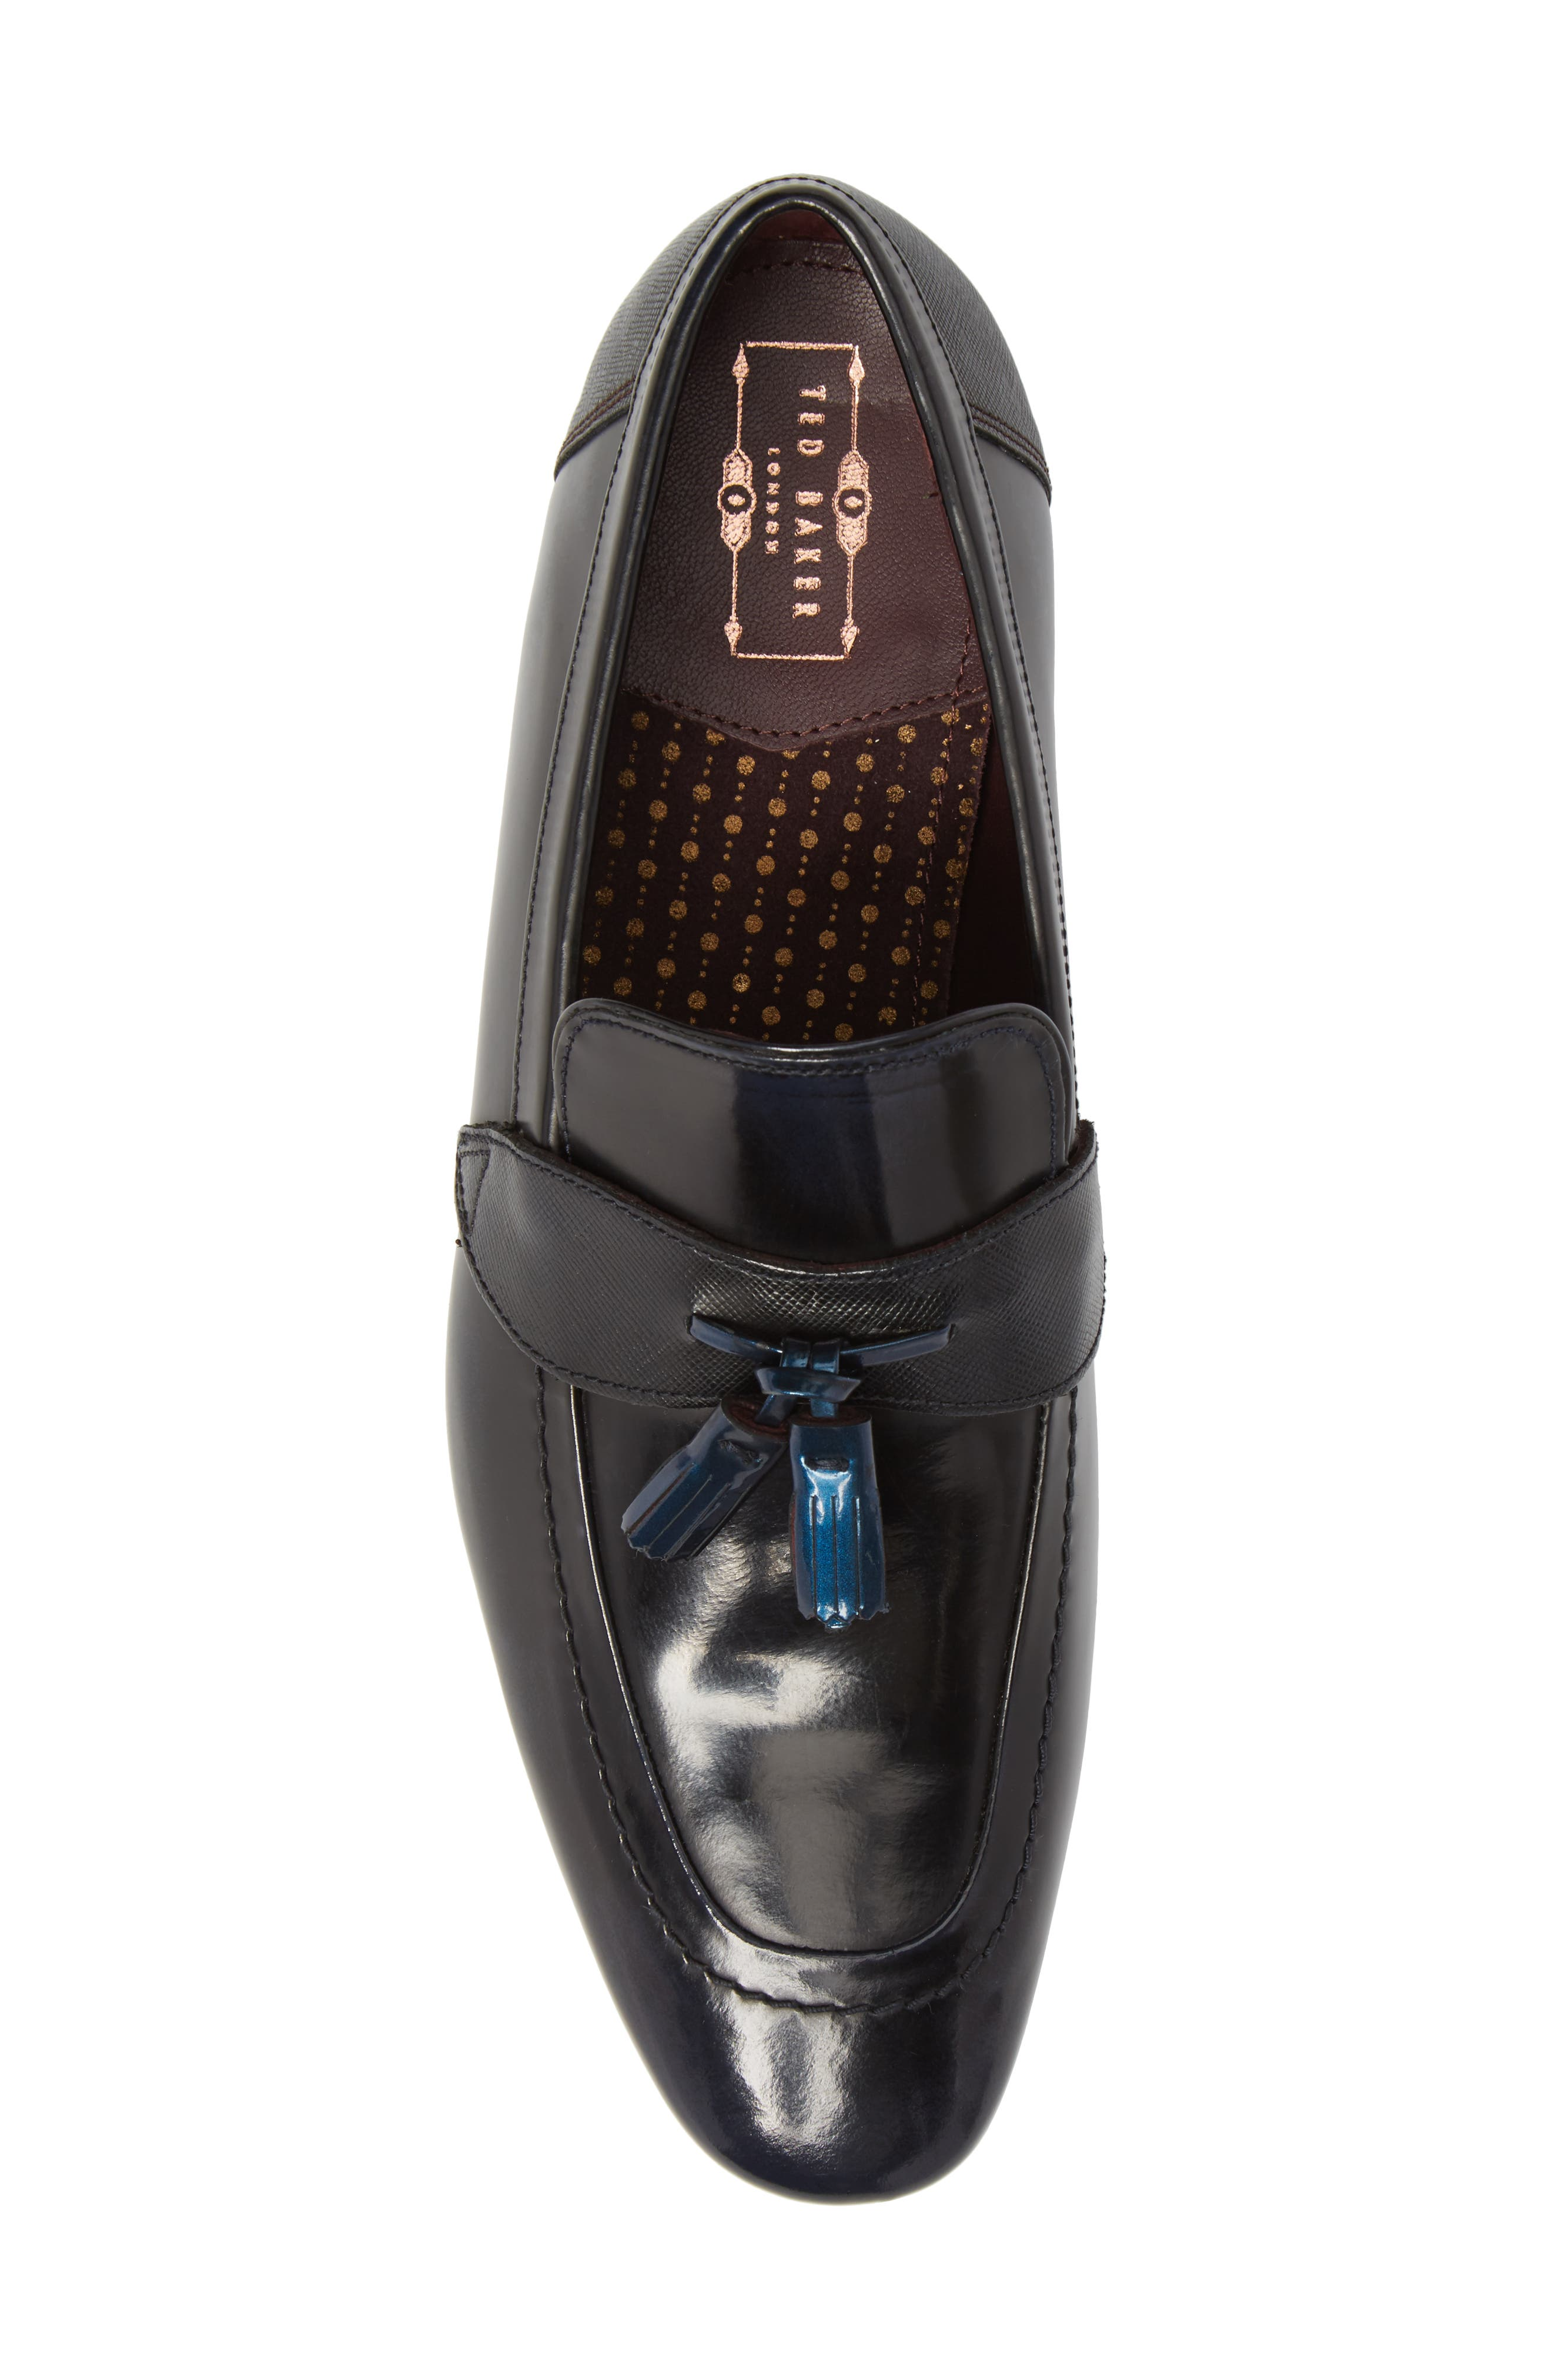 Grafit Tassel Loafer,                             Alternate thumbnail 5, color,                             416